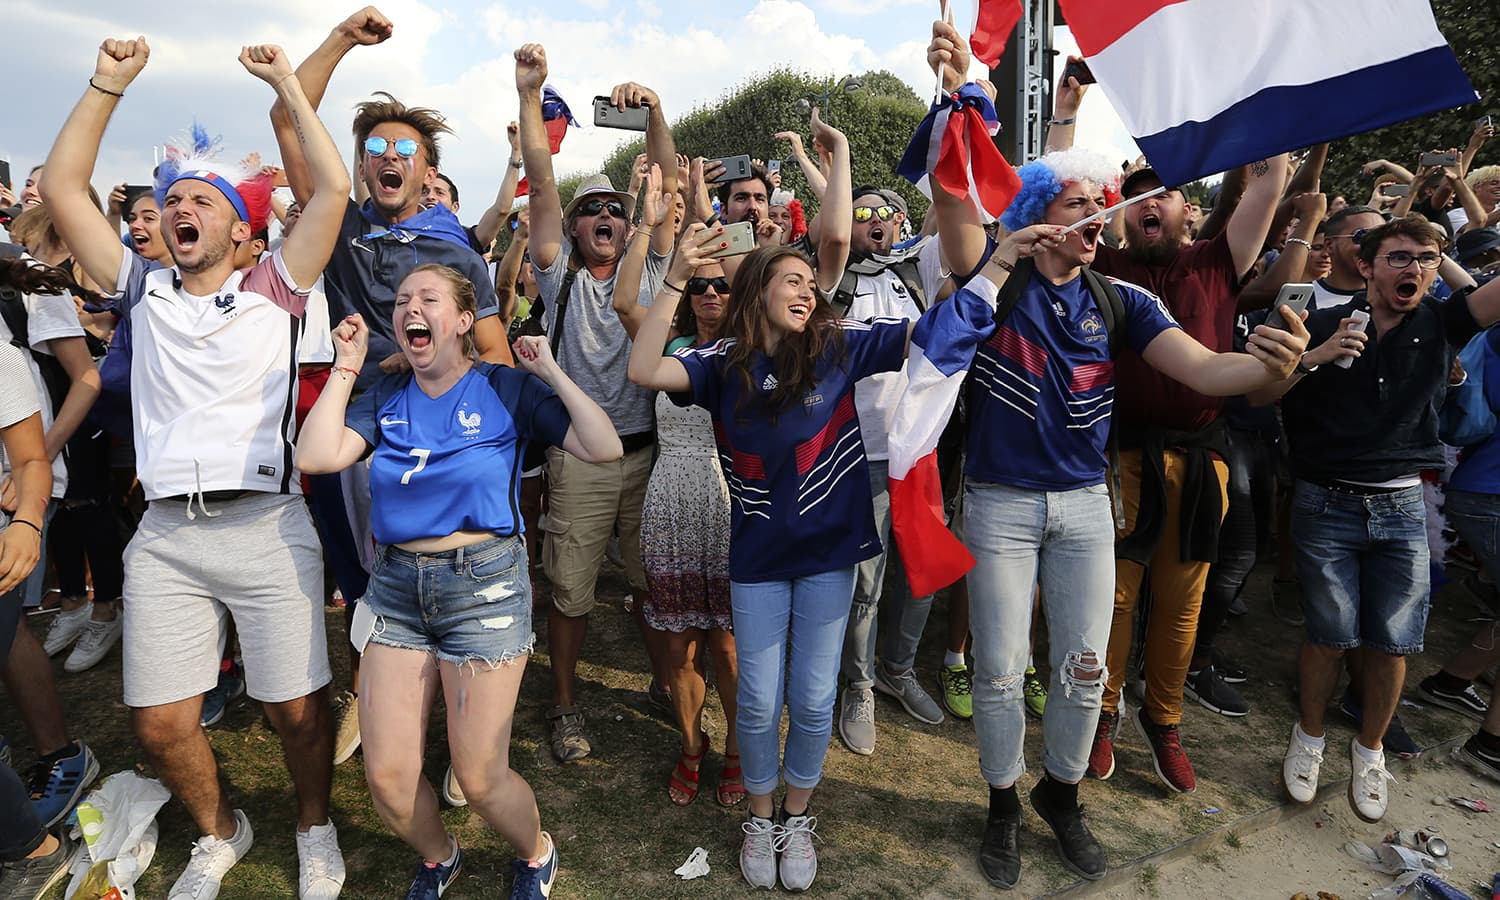 Supporters of the French football team celebrate after France won the World Cup final between France and Croatia on the Champ de Mars in Paris. — AP